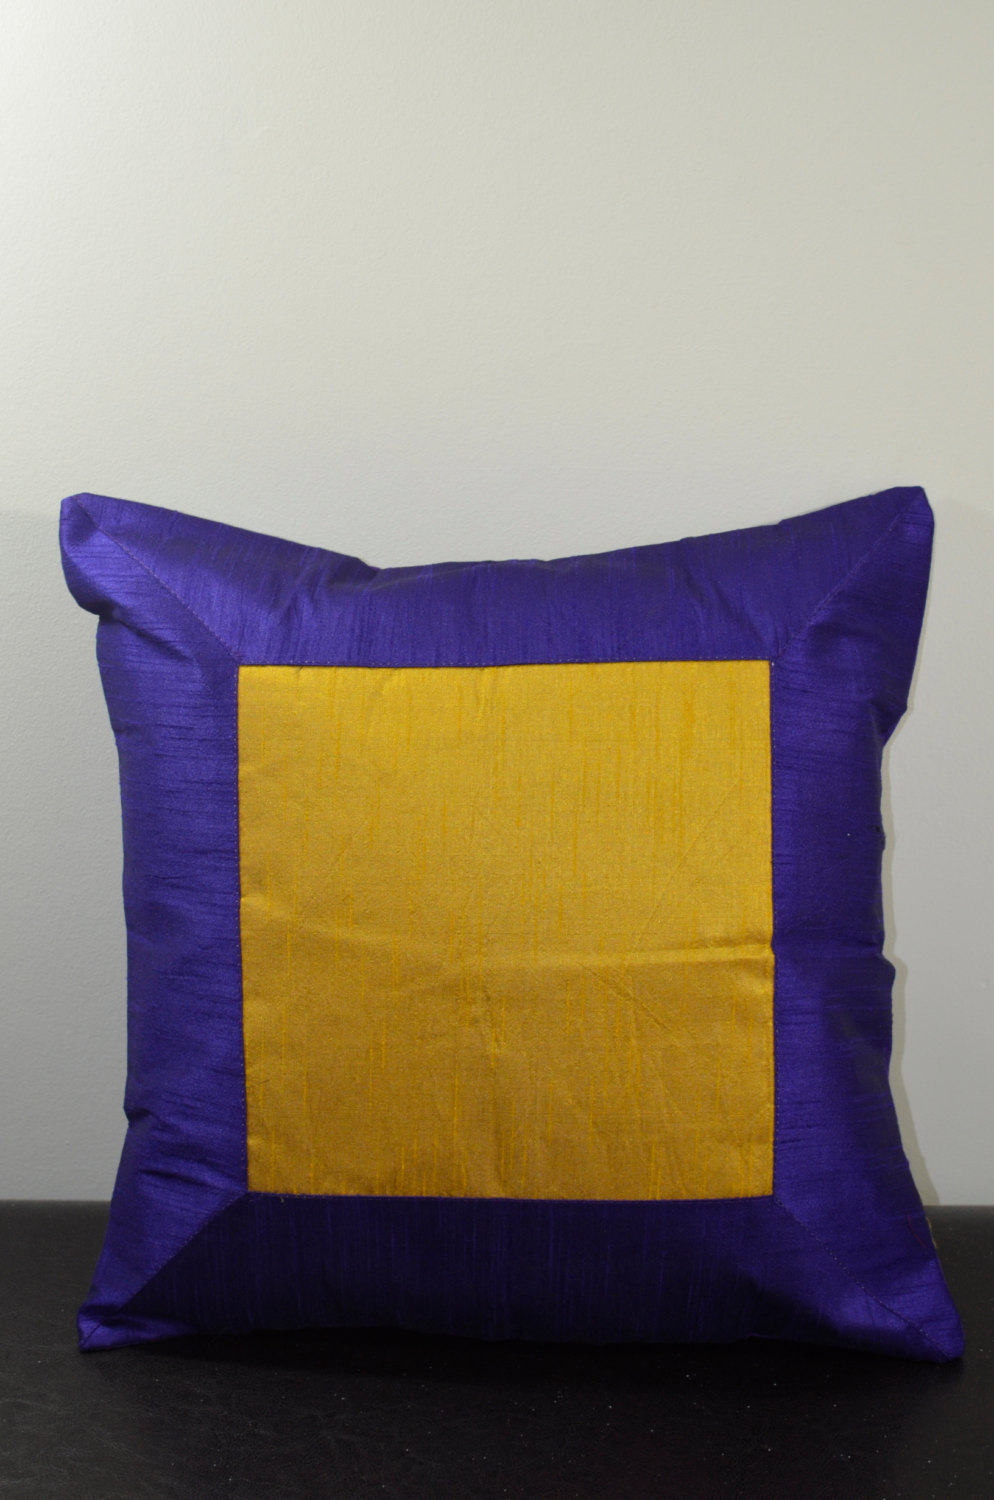 Throw Pillows On The Bed Song : Ethnic designer silk cushion cover, bed decorative pillow, floor throw pillow, a - Pillows